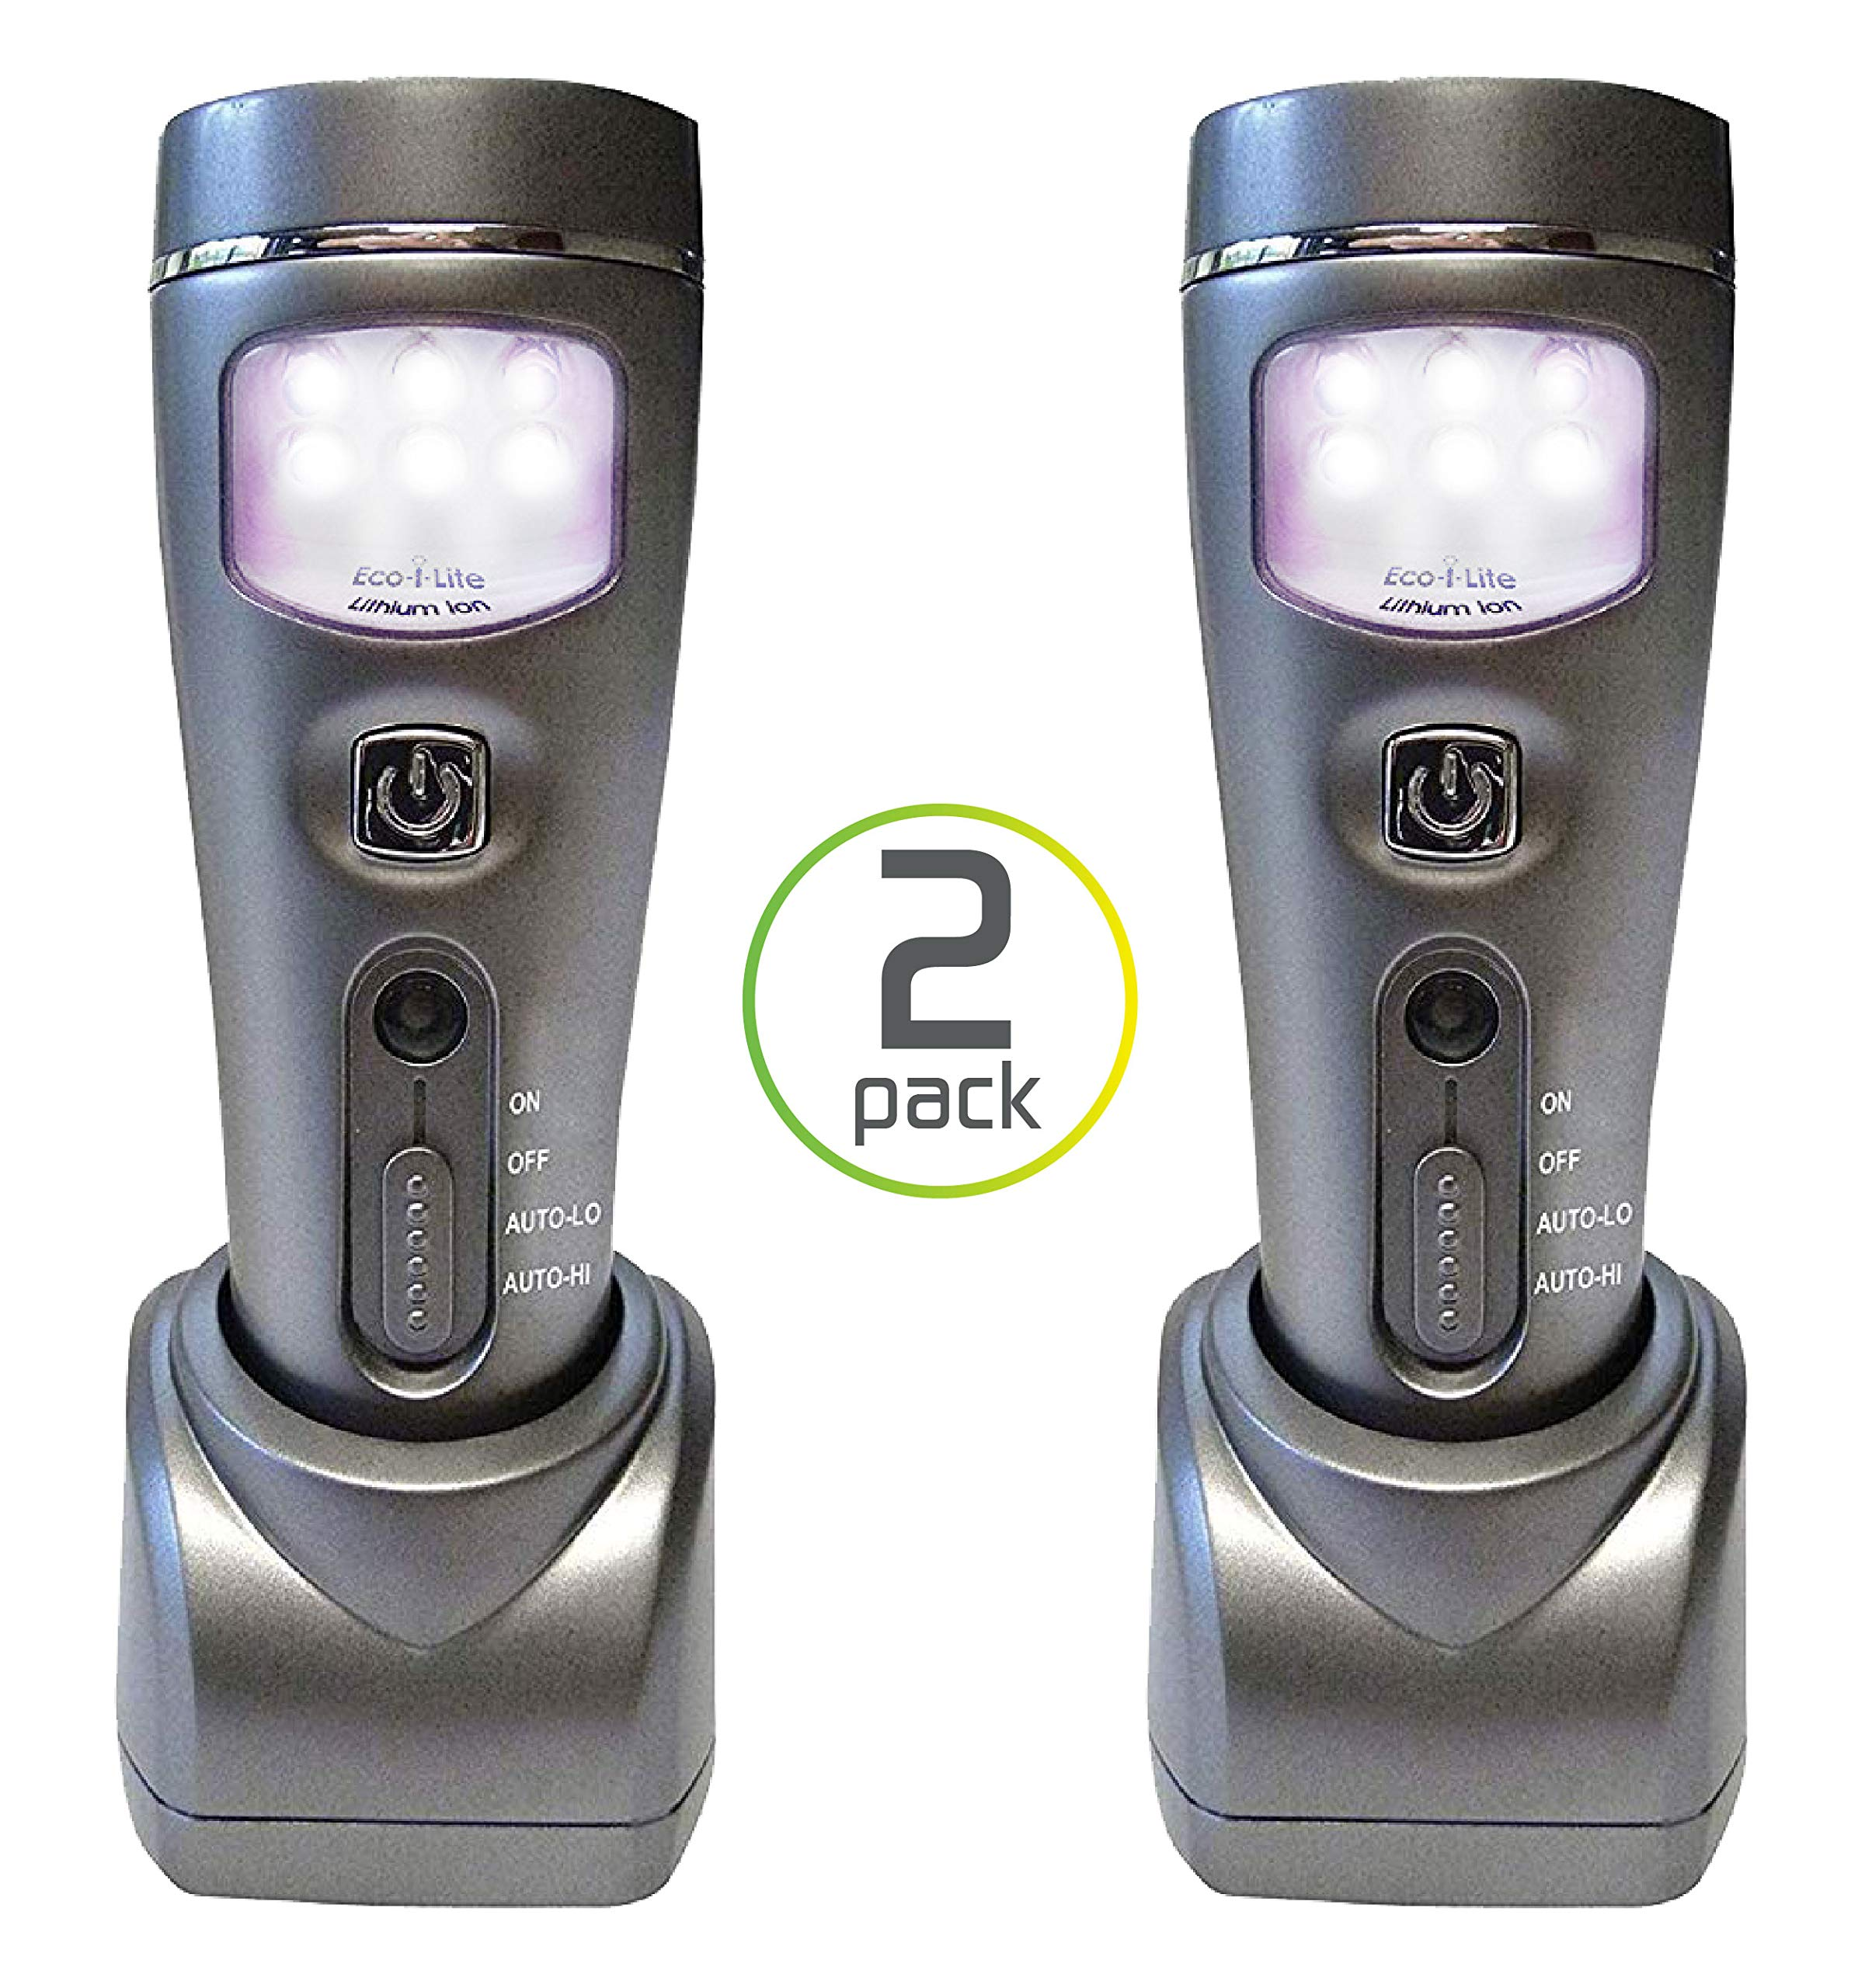 Capstone Lighting 4-in-1 Eco-I-Lite LED Emergency Flashlights, Night Light, Power Failure and Worklight, 2 Pack - Ideal Survival Gear for Your Emergency Kit, Perfect for Power Outages and Hurricanes by Capstone Lighting